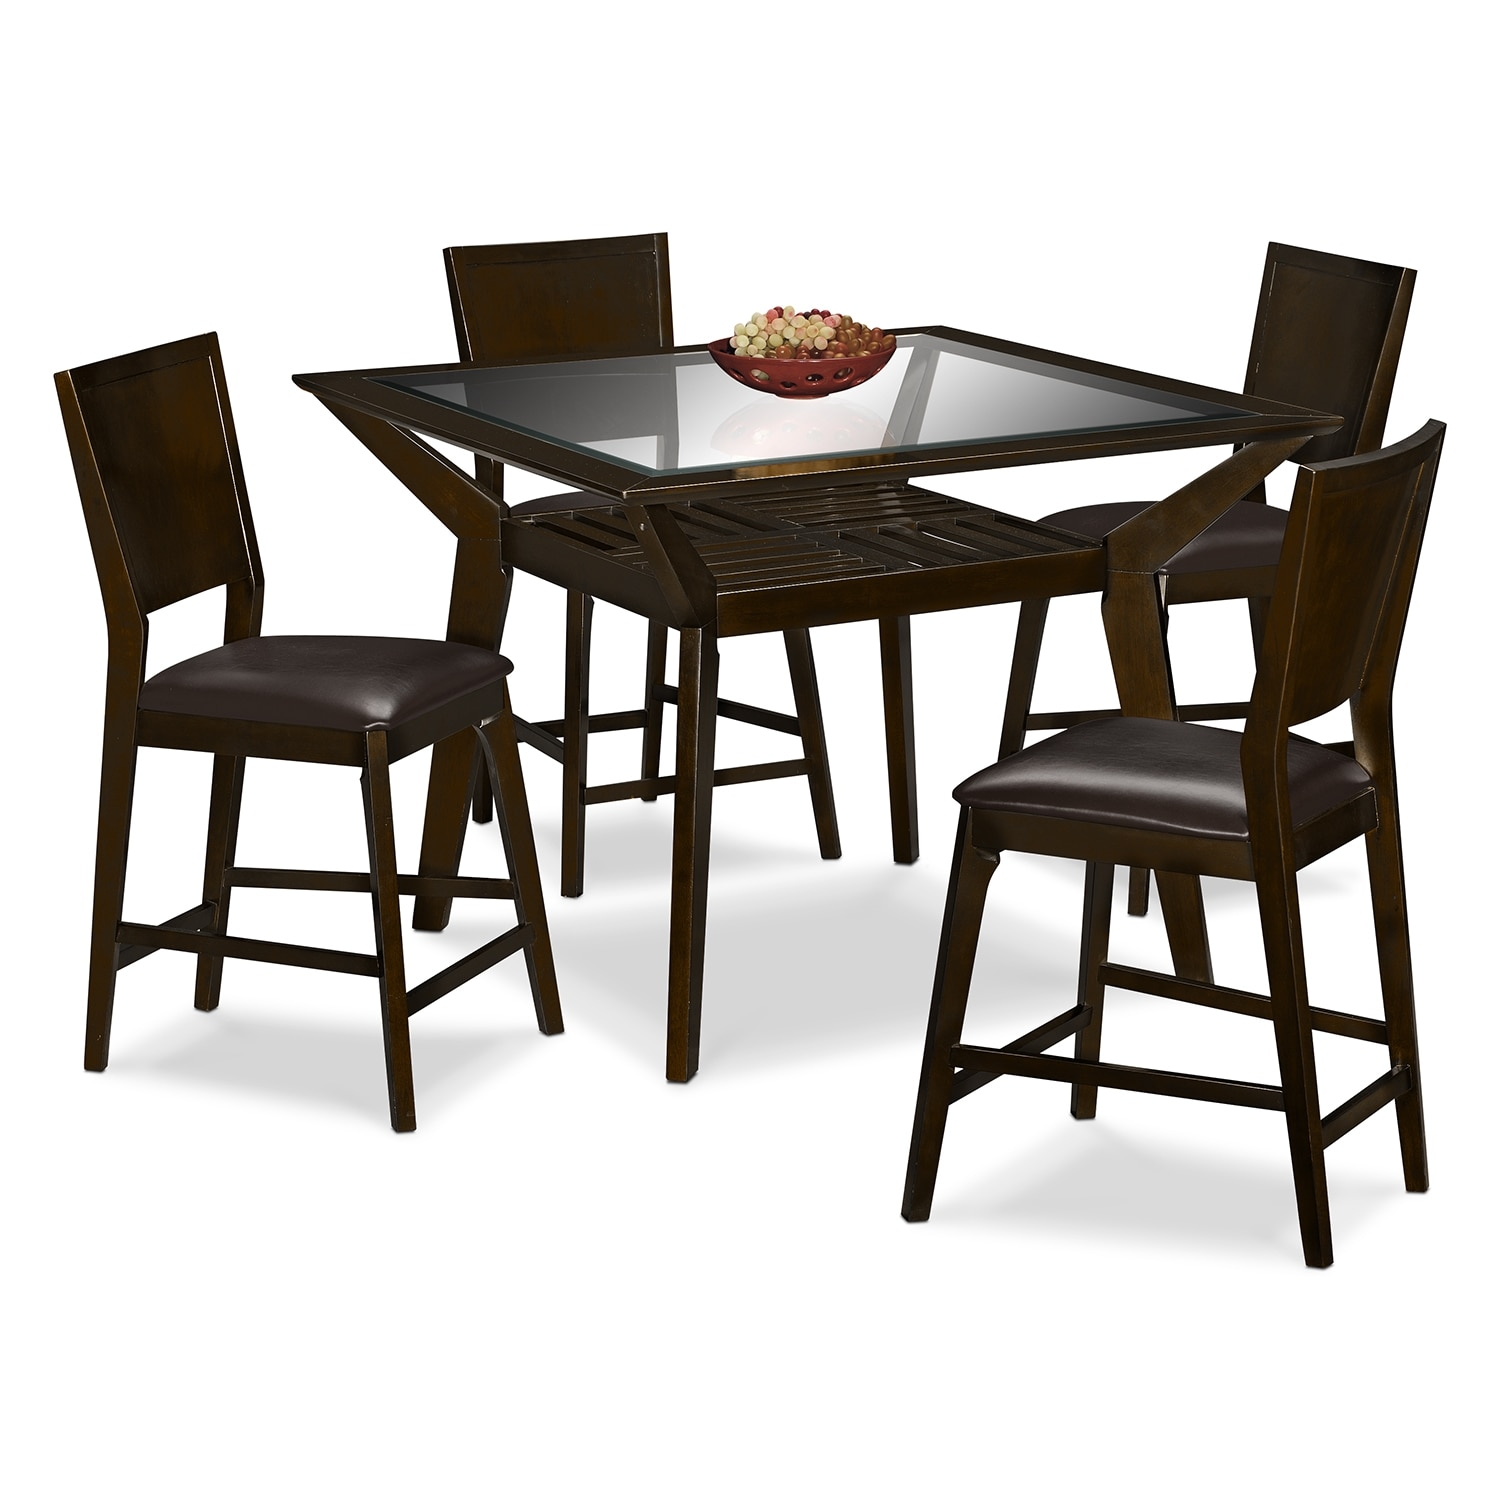 dining room counter height tables | Mystic Counter-Height Table and 4 Chairs - Merlot and ...